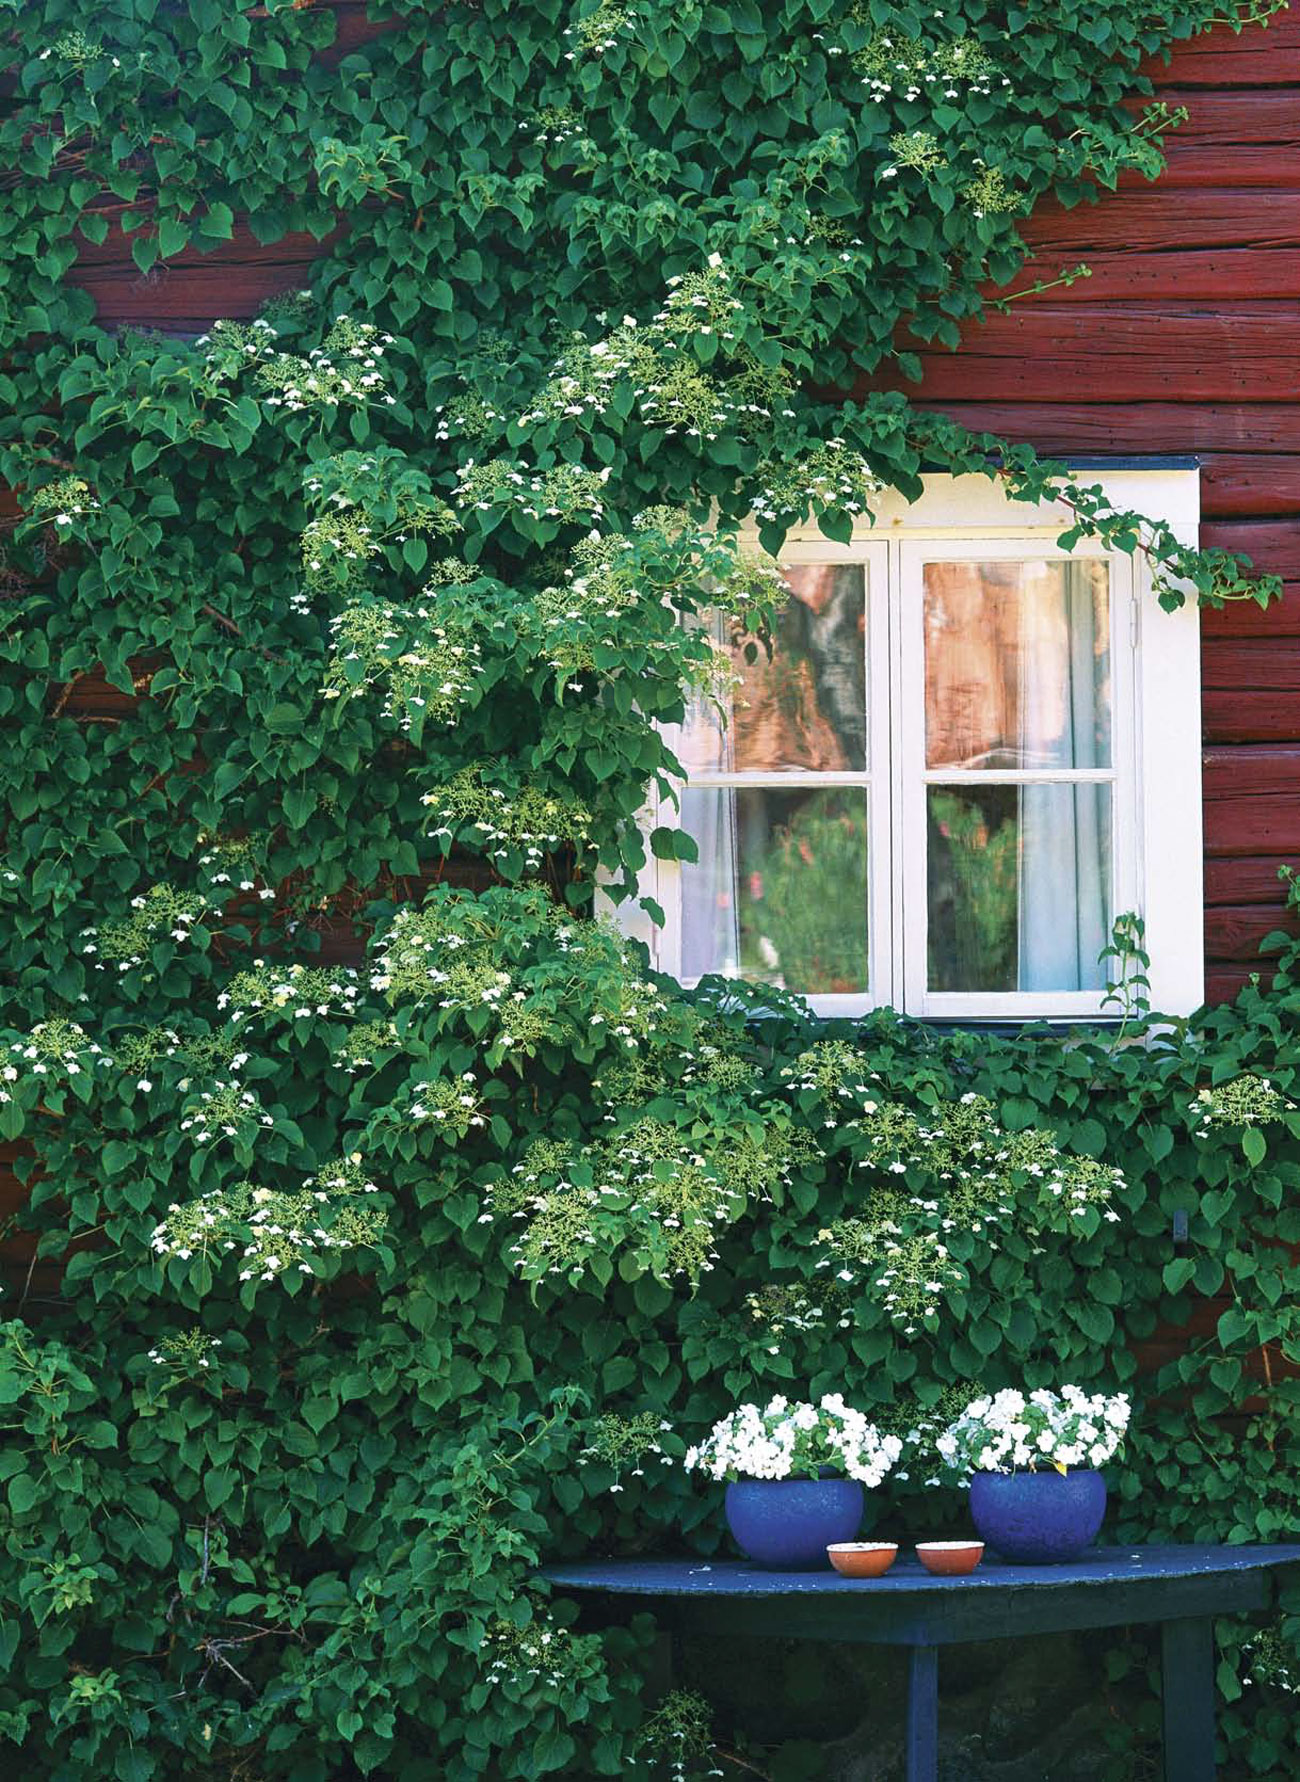 White cottage window peaking out form under a large exterior wall of climbing ivy.